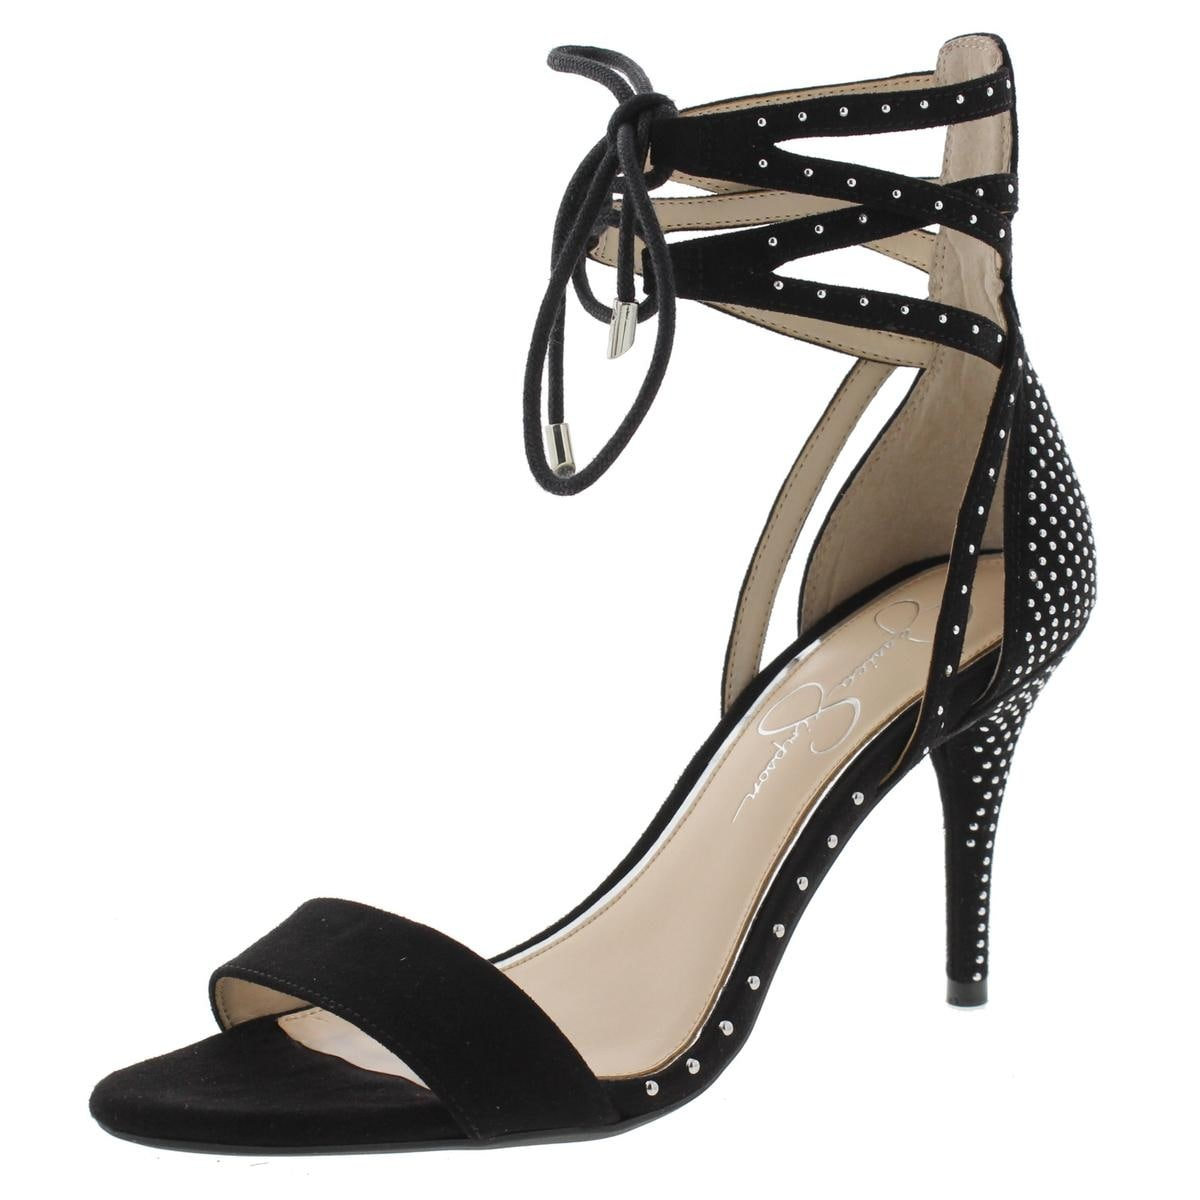 945e98f98bc7 Shop Jessica Simpson Womens Maevi Gladiator Sandals Microsuede Studded -  Free Shipping On Orders Over  45 - Overstock - 14528961